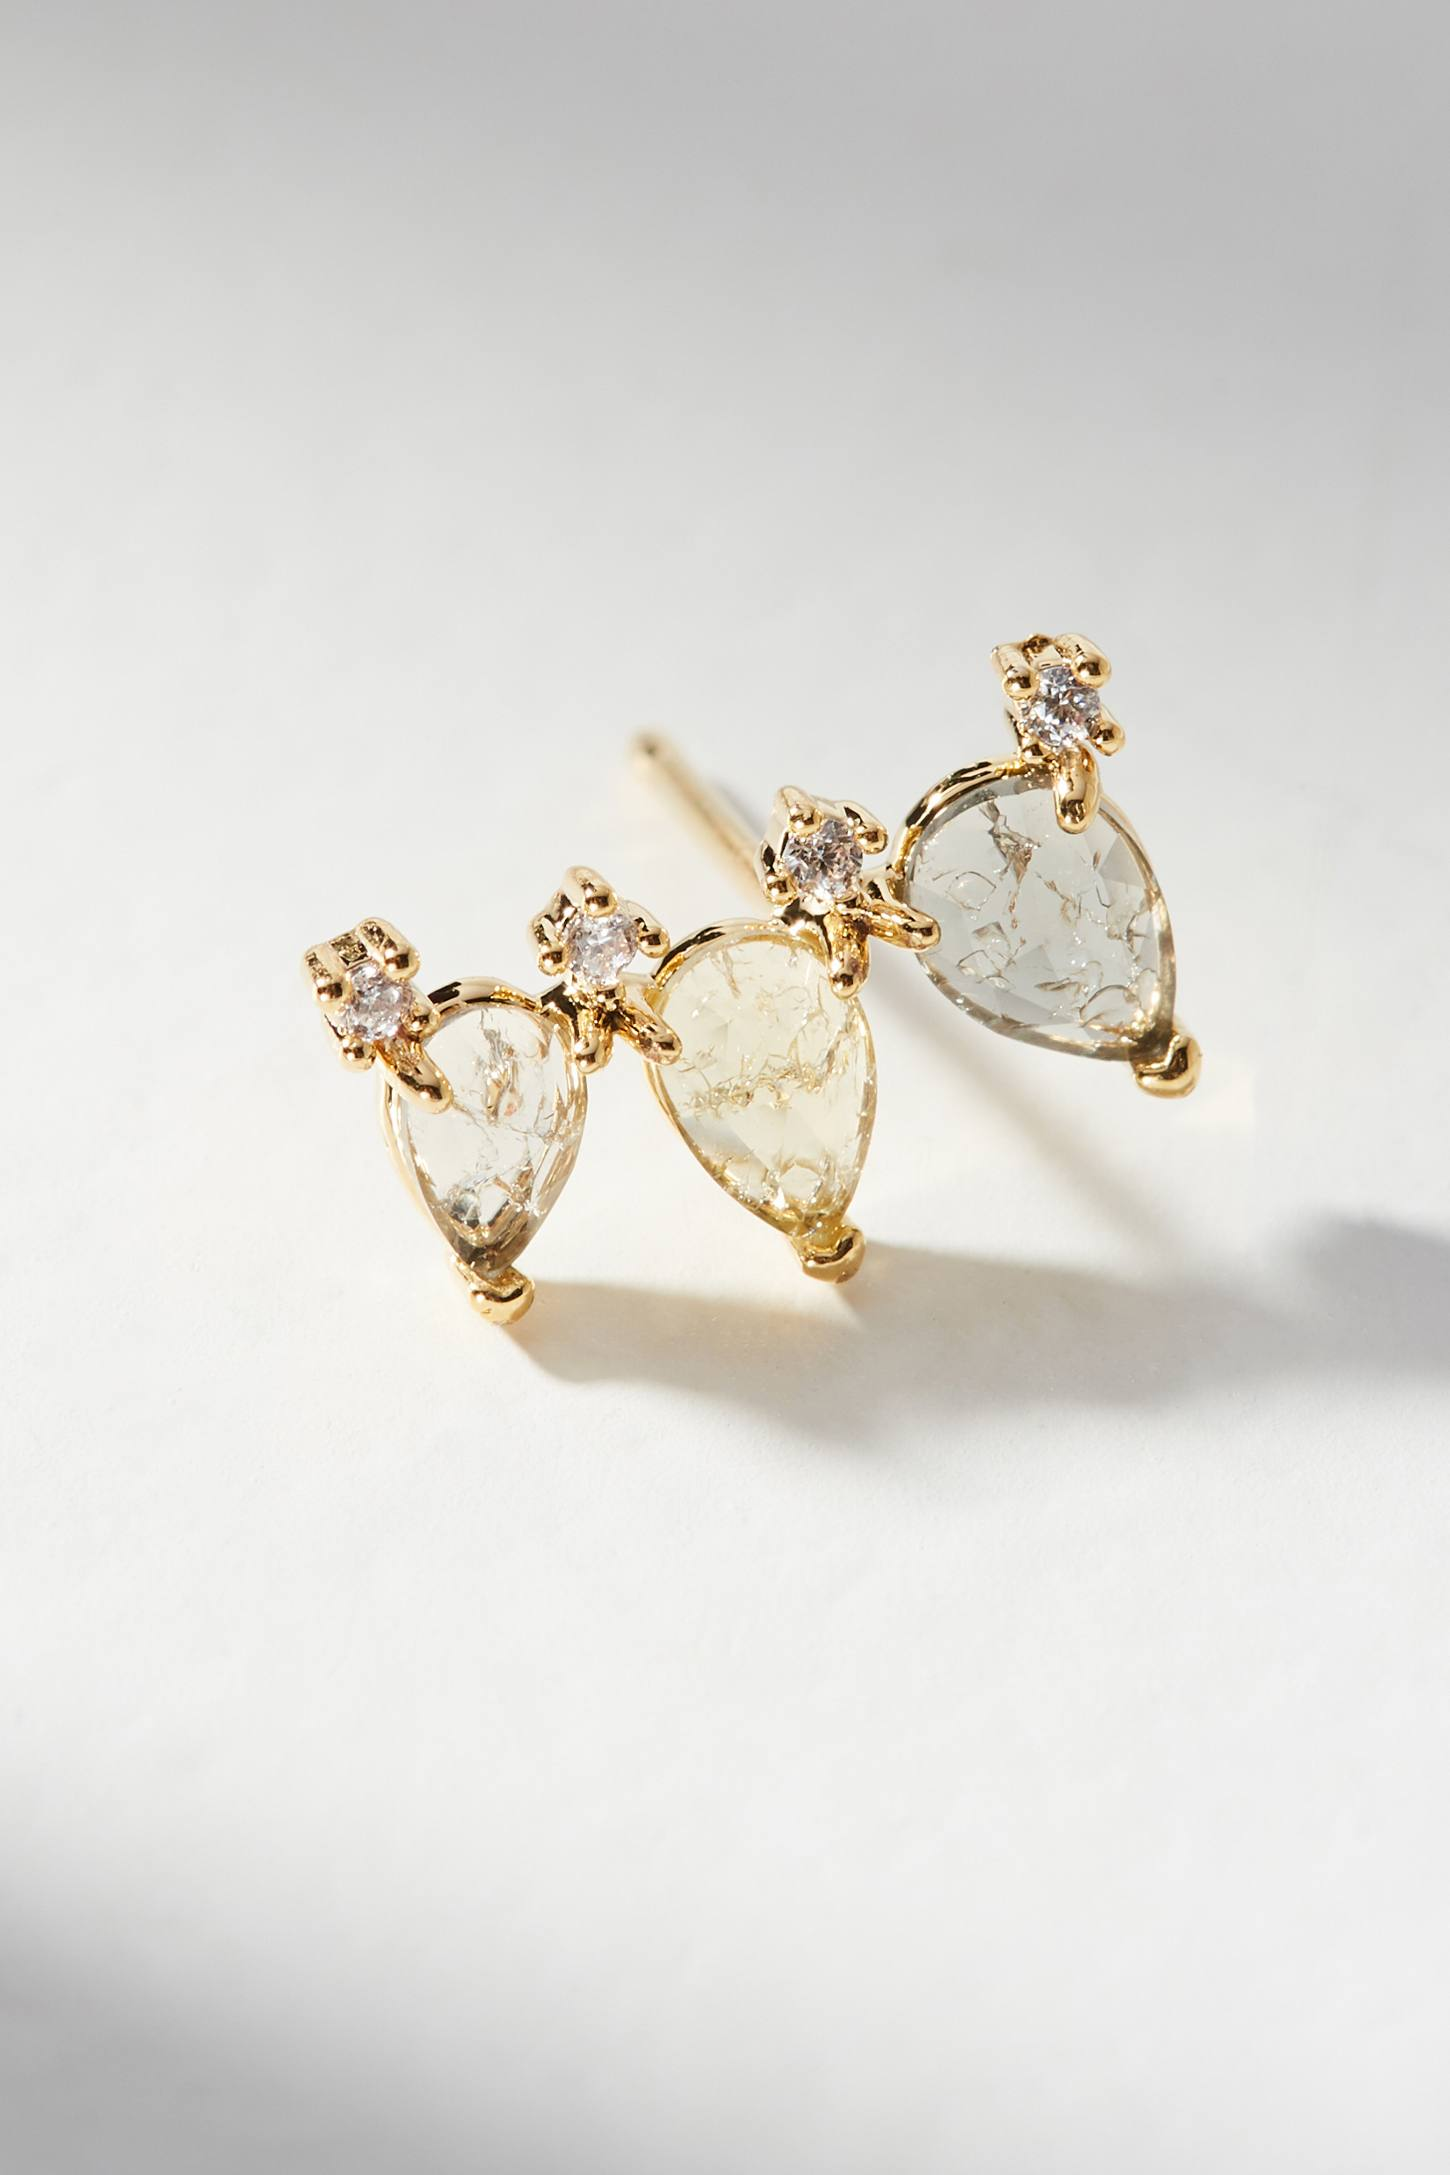 Anthropologie Trio Charm Climber Earrings